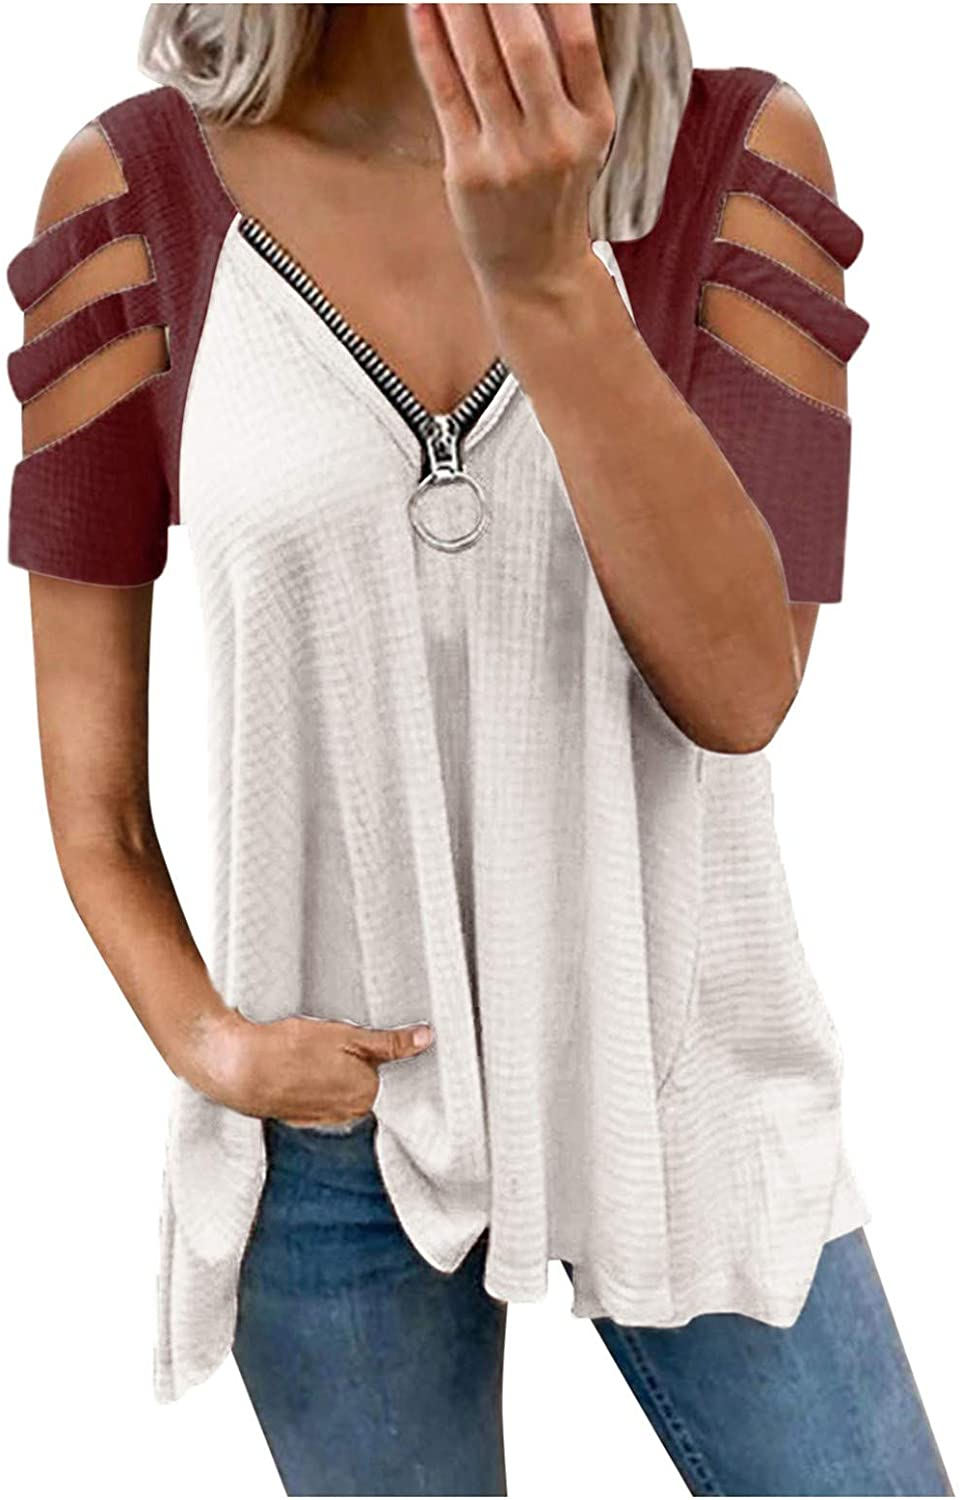 Tunic Tops for Women Casual Summer,Womens Casual V Neck T Shirts Roll Up Short Sleeve Loose Solid Color Tunic Casual Plus Size Basic Tees Henley Tops